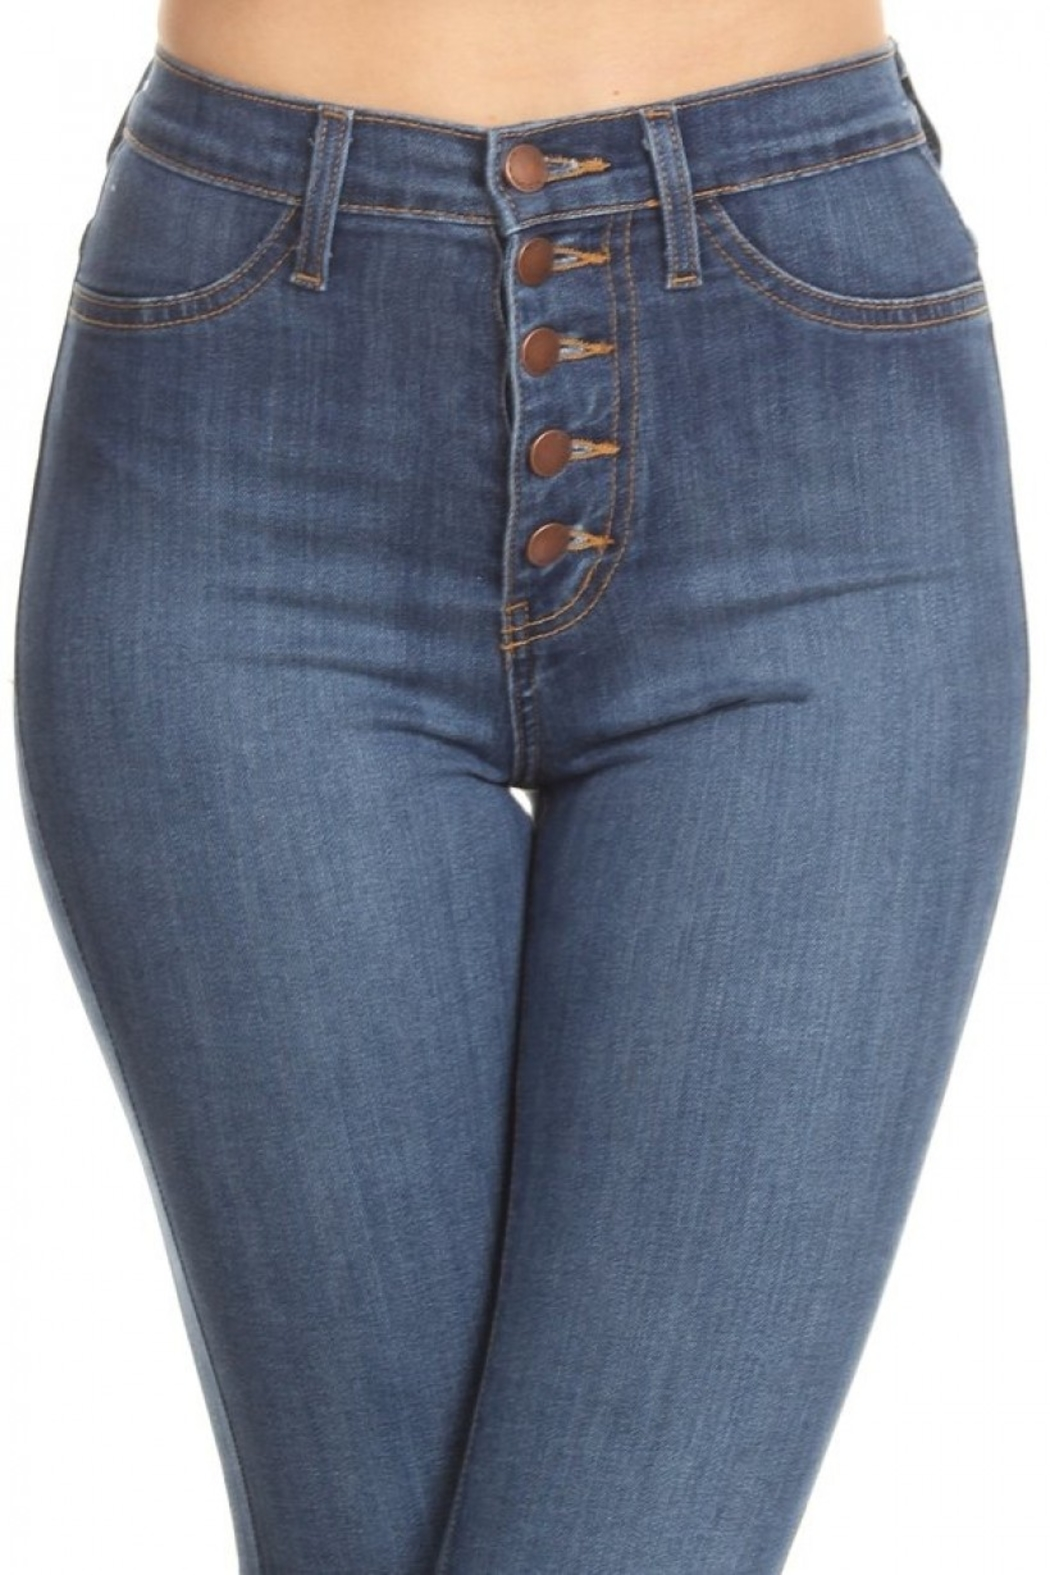 Vibrant MIU Bell Bottom Jeans - Back Cropped Image